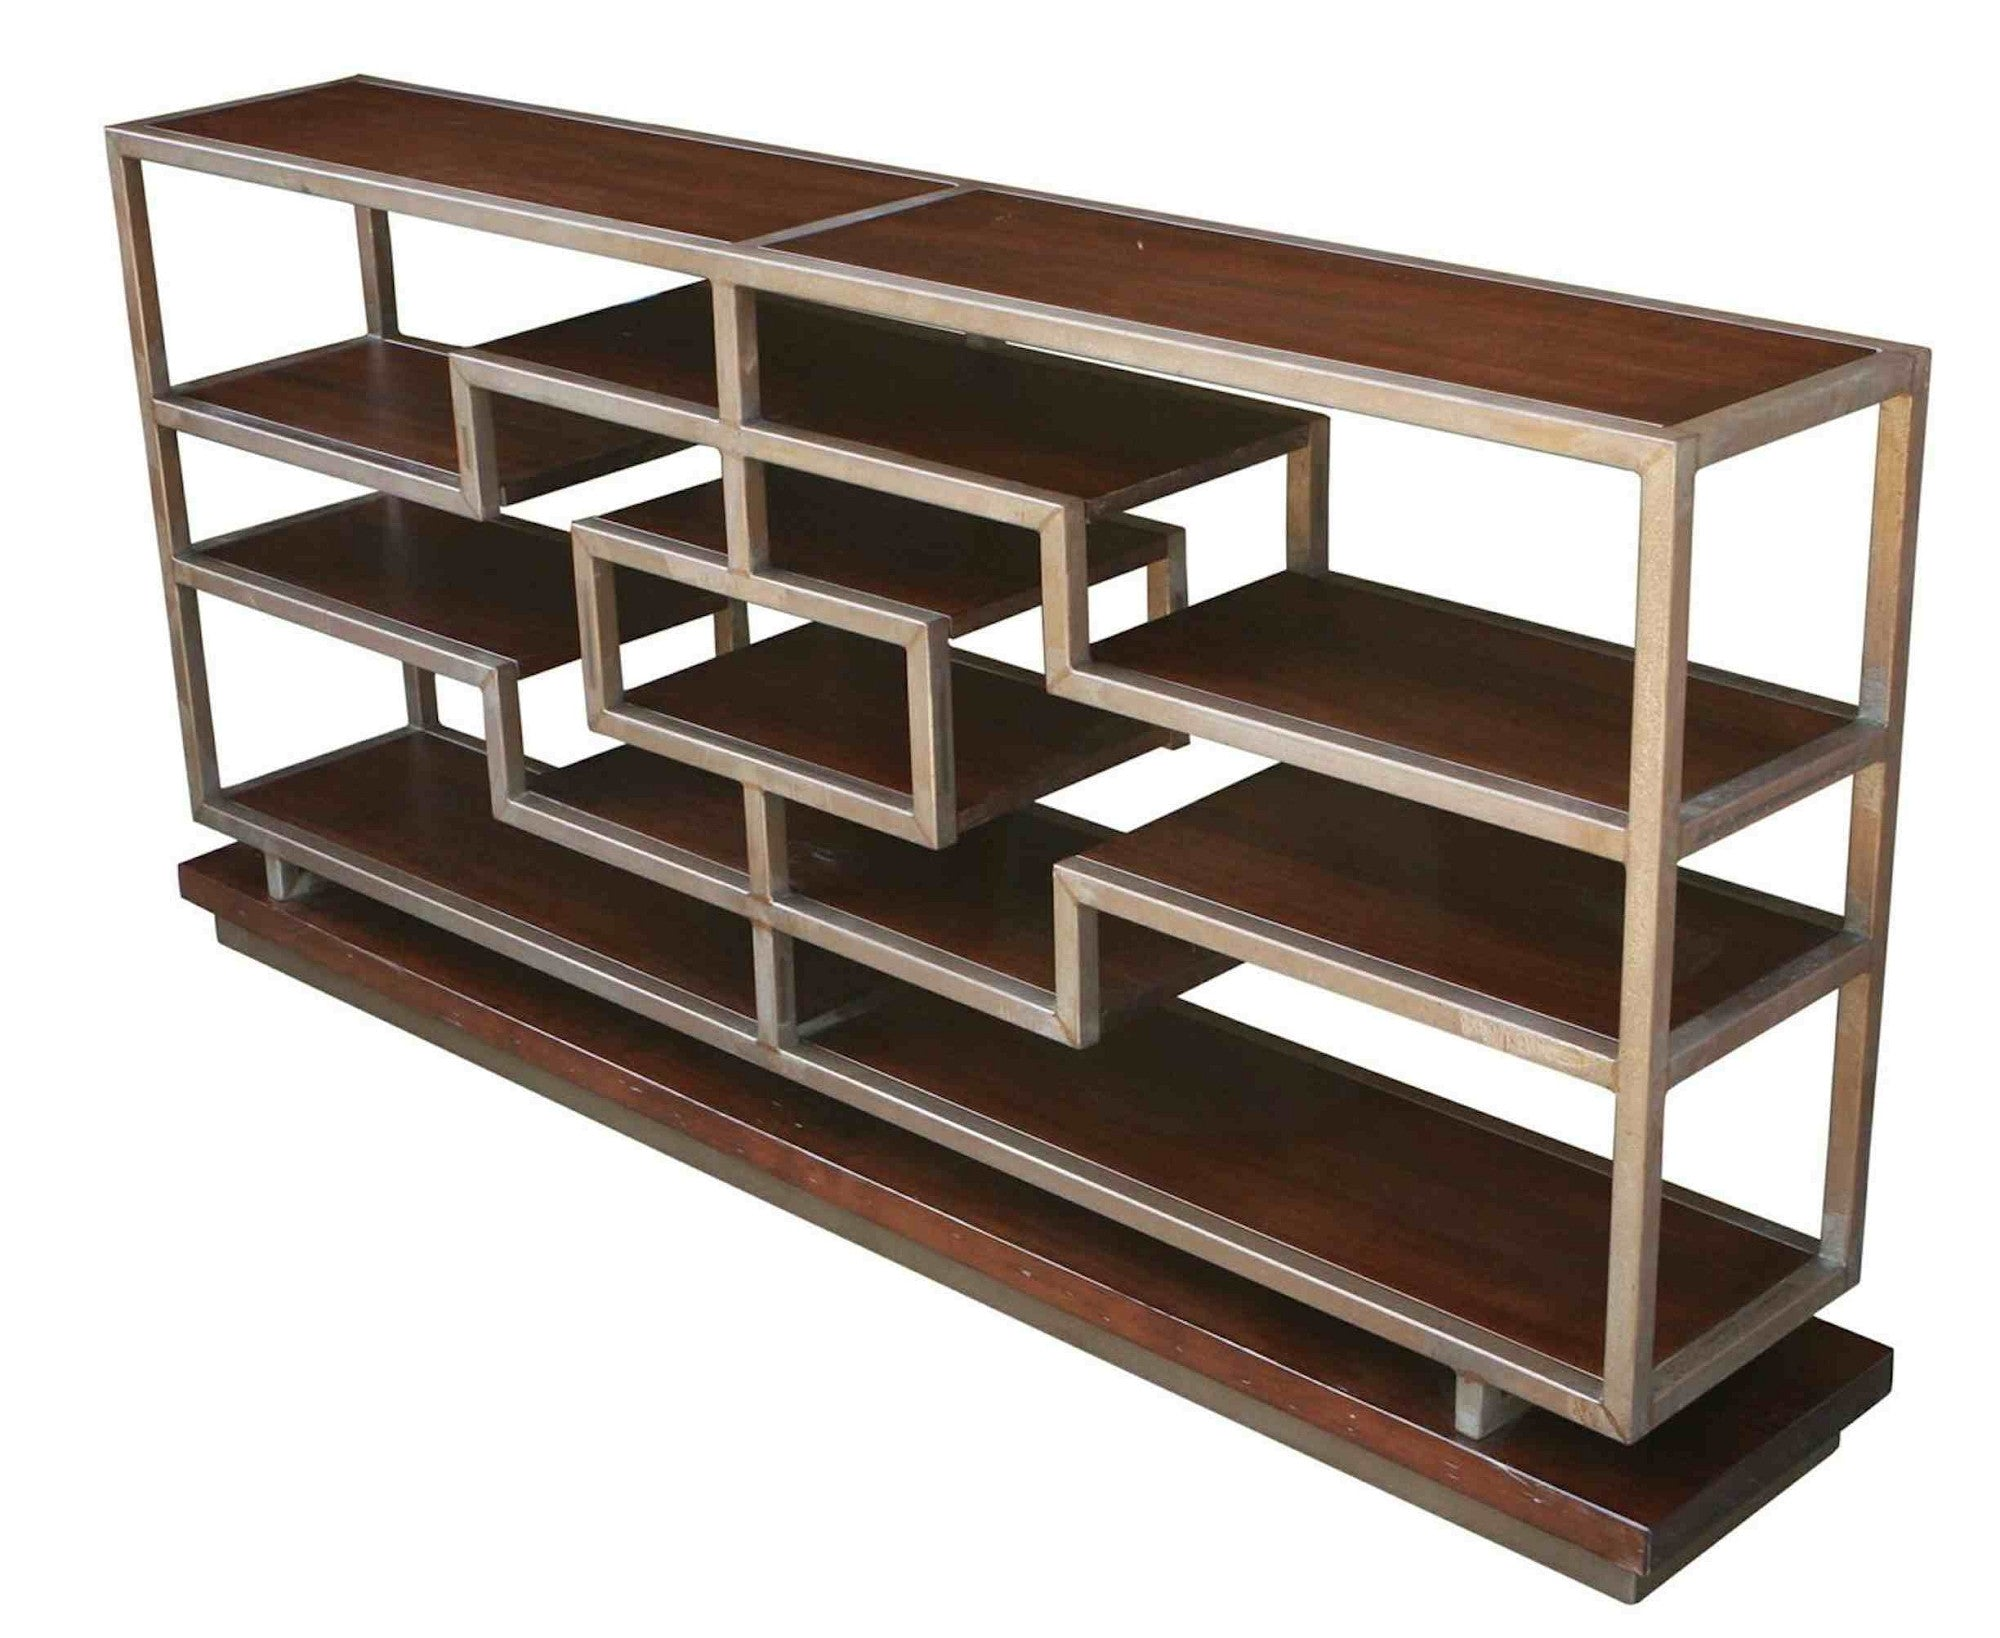 ^ Mid-entury Modern onsole Bookcase : asablanca – Mortise & enon